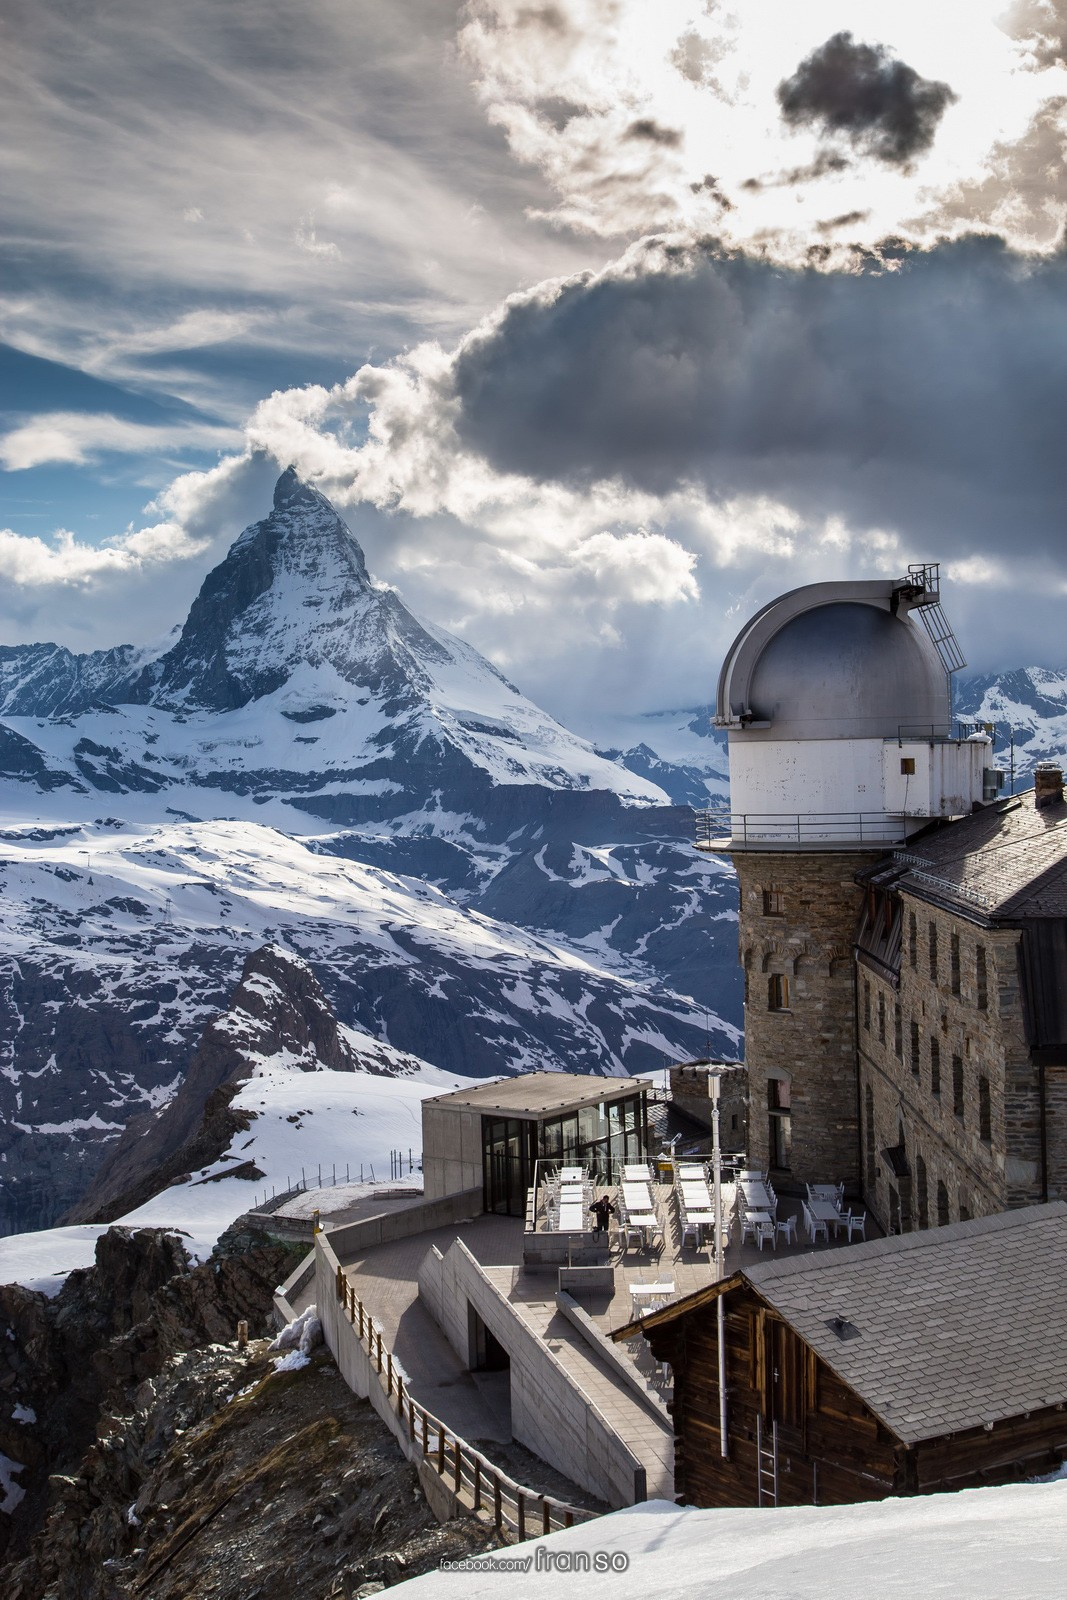 Landscape | Switzerland | Matterhorn and Gornergrat  | 3100 Kulmhotel and the Observatory